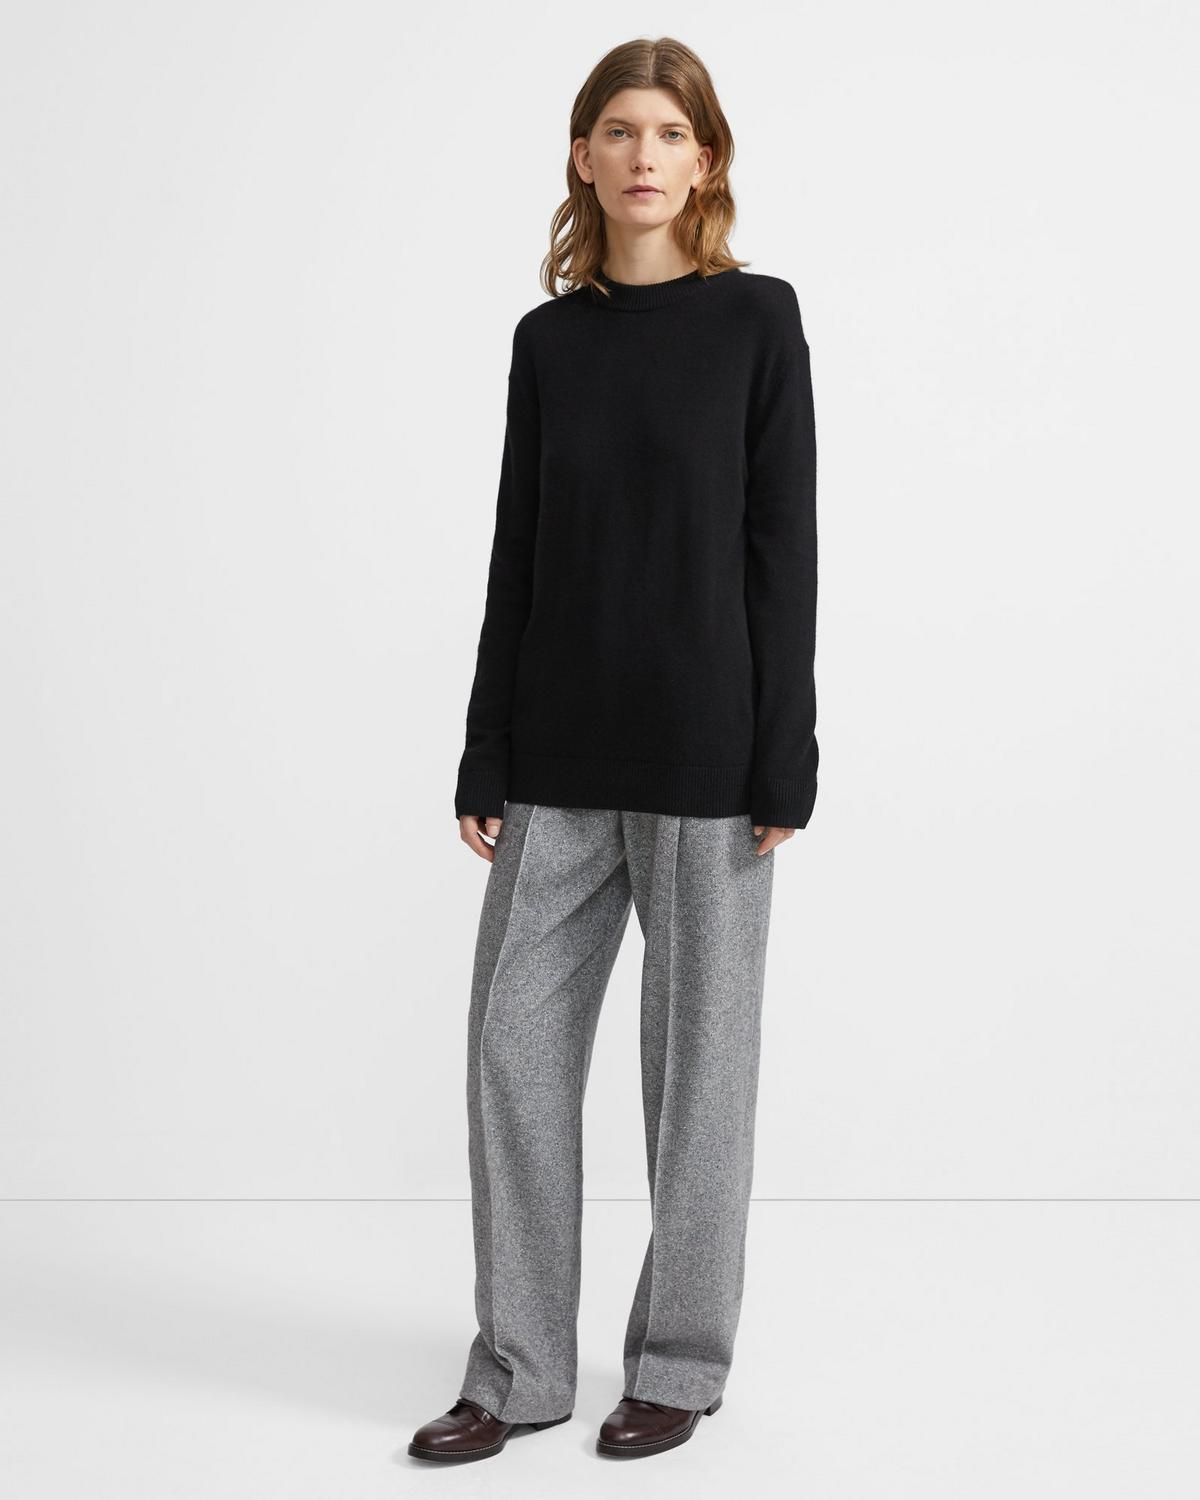 Cashmere Solid Crewneck Sweater